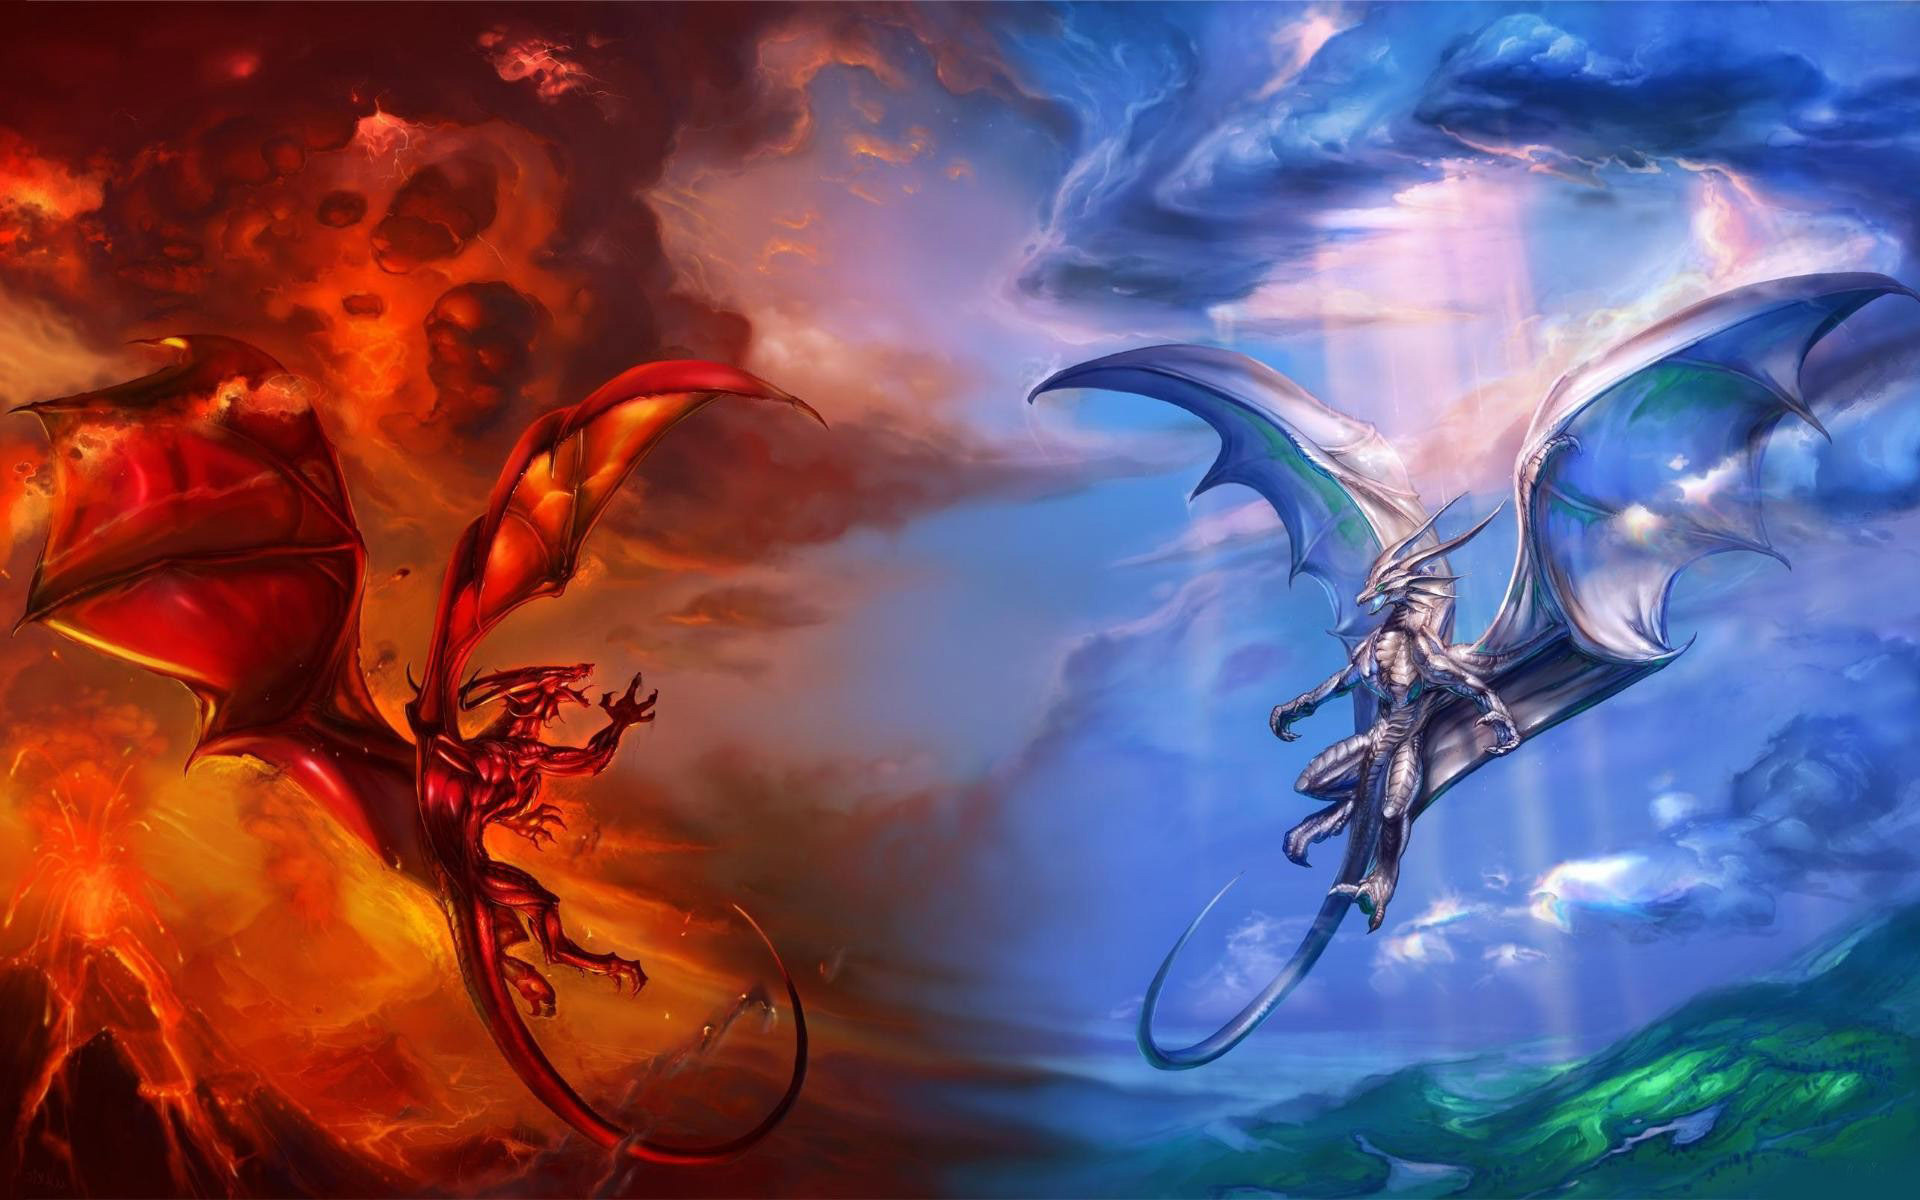 The Dragon Wallpapers Android Apps on Google Play